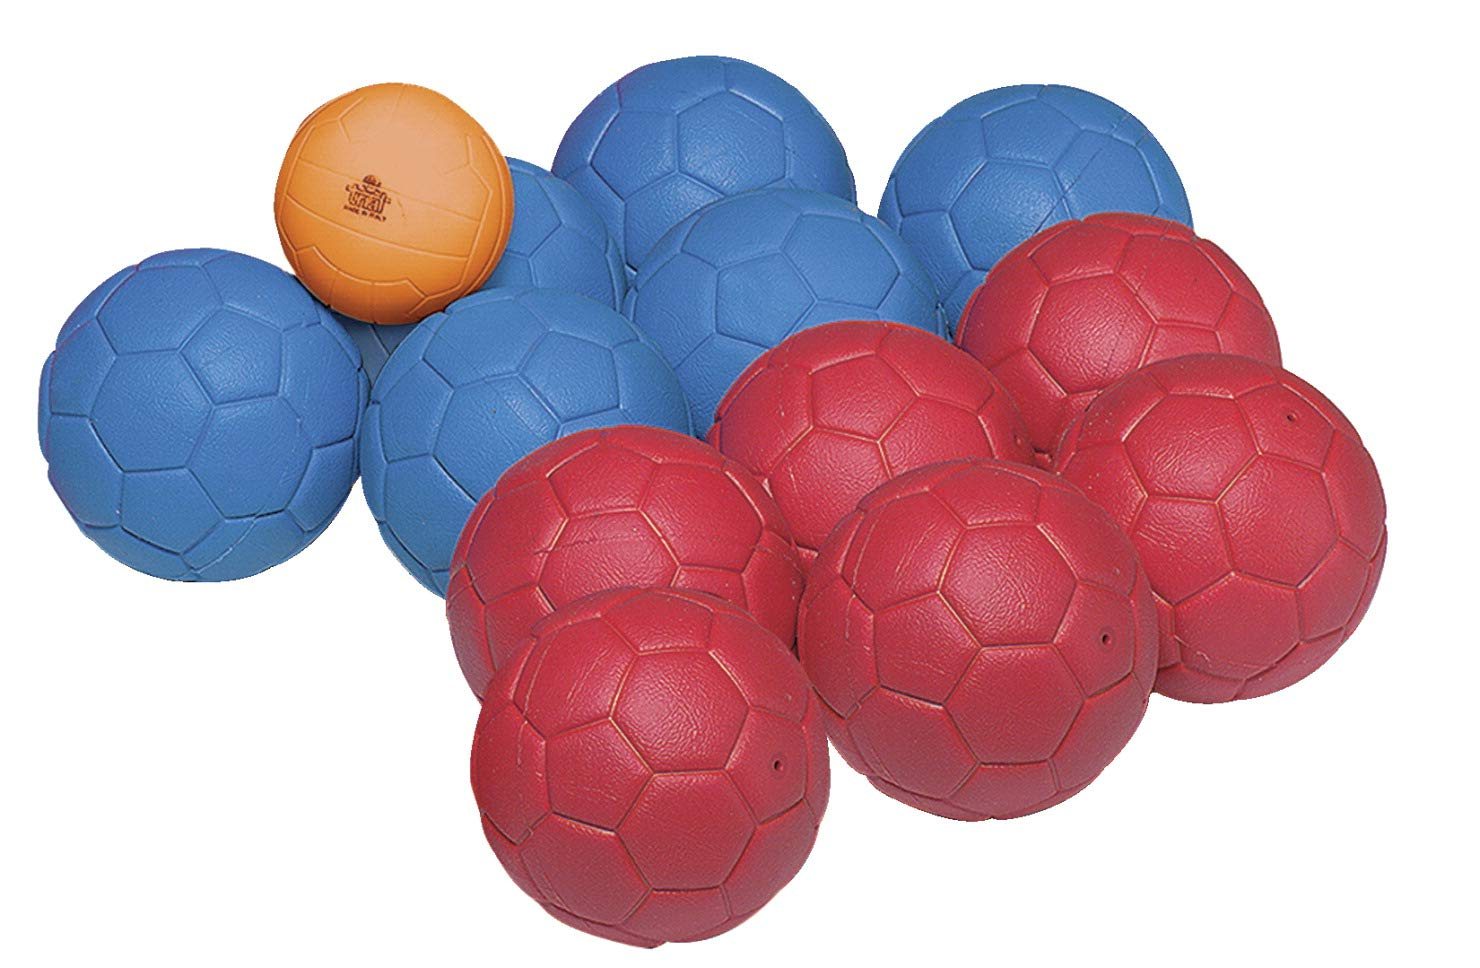 Image of Sportime Ultimax Softbocce Game, Set of 12 Bocce Balls, 1 Jack Ball and Carry Case